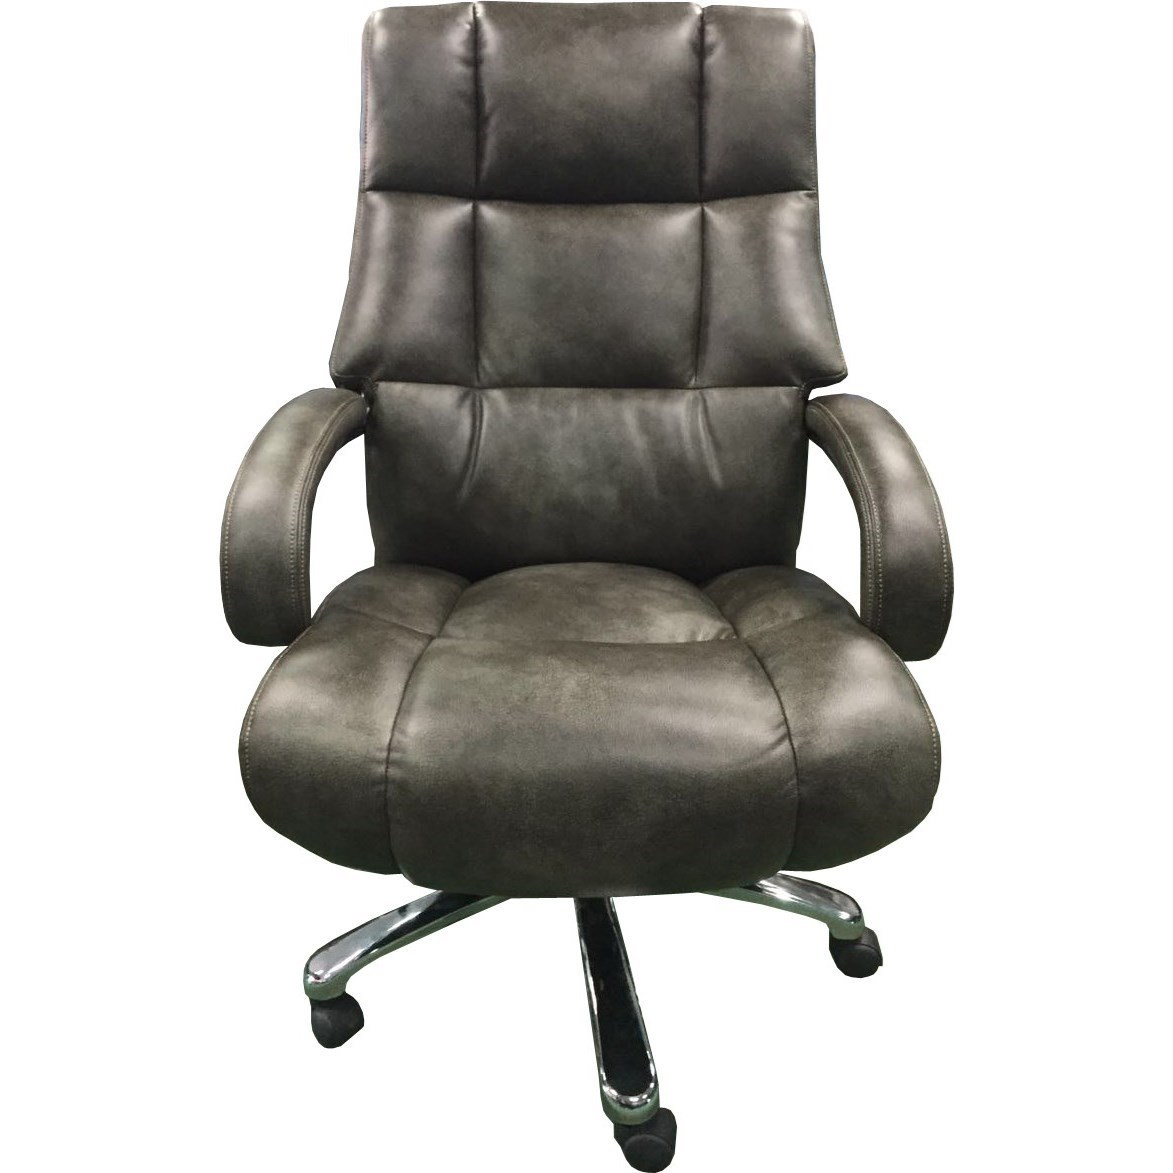 Parker Living Desk ChairsHeavy Duty Desk Chair